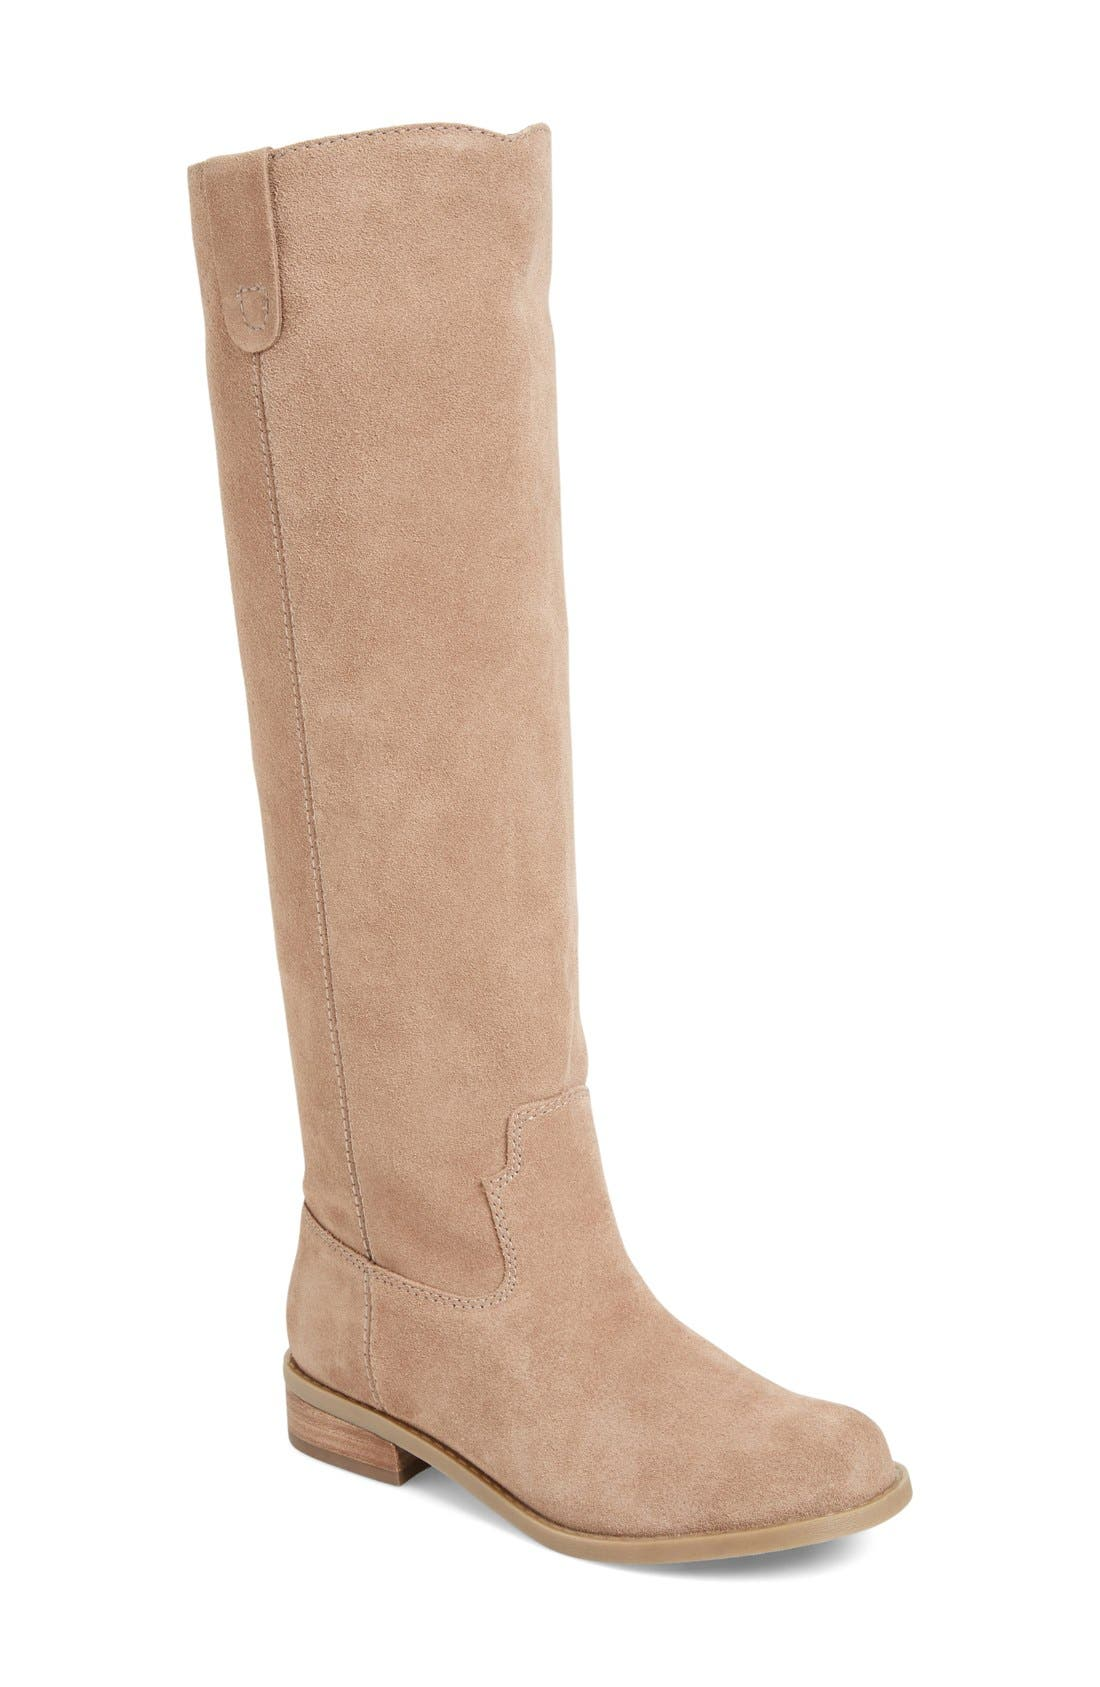 Main Image - Sole Society Hawn Knee High Boot (Women)